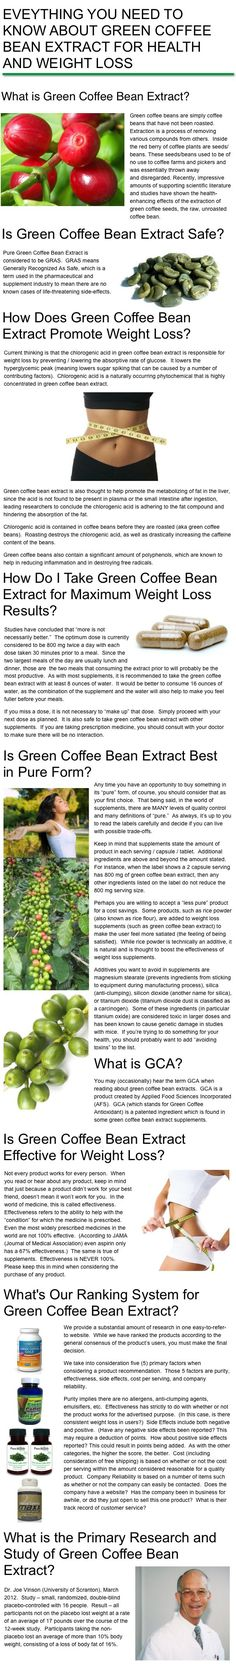 Everything you need to know about Green Coffee Bean Extract for Health and Weightloss - http://www.best-pure-green-coffee-bean-extract-reviews.com/info#.UCA1Q0S8KeU